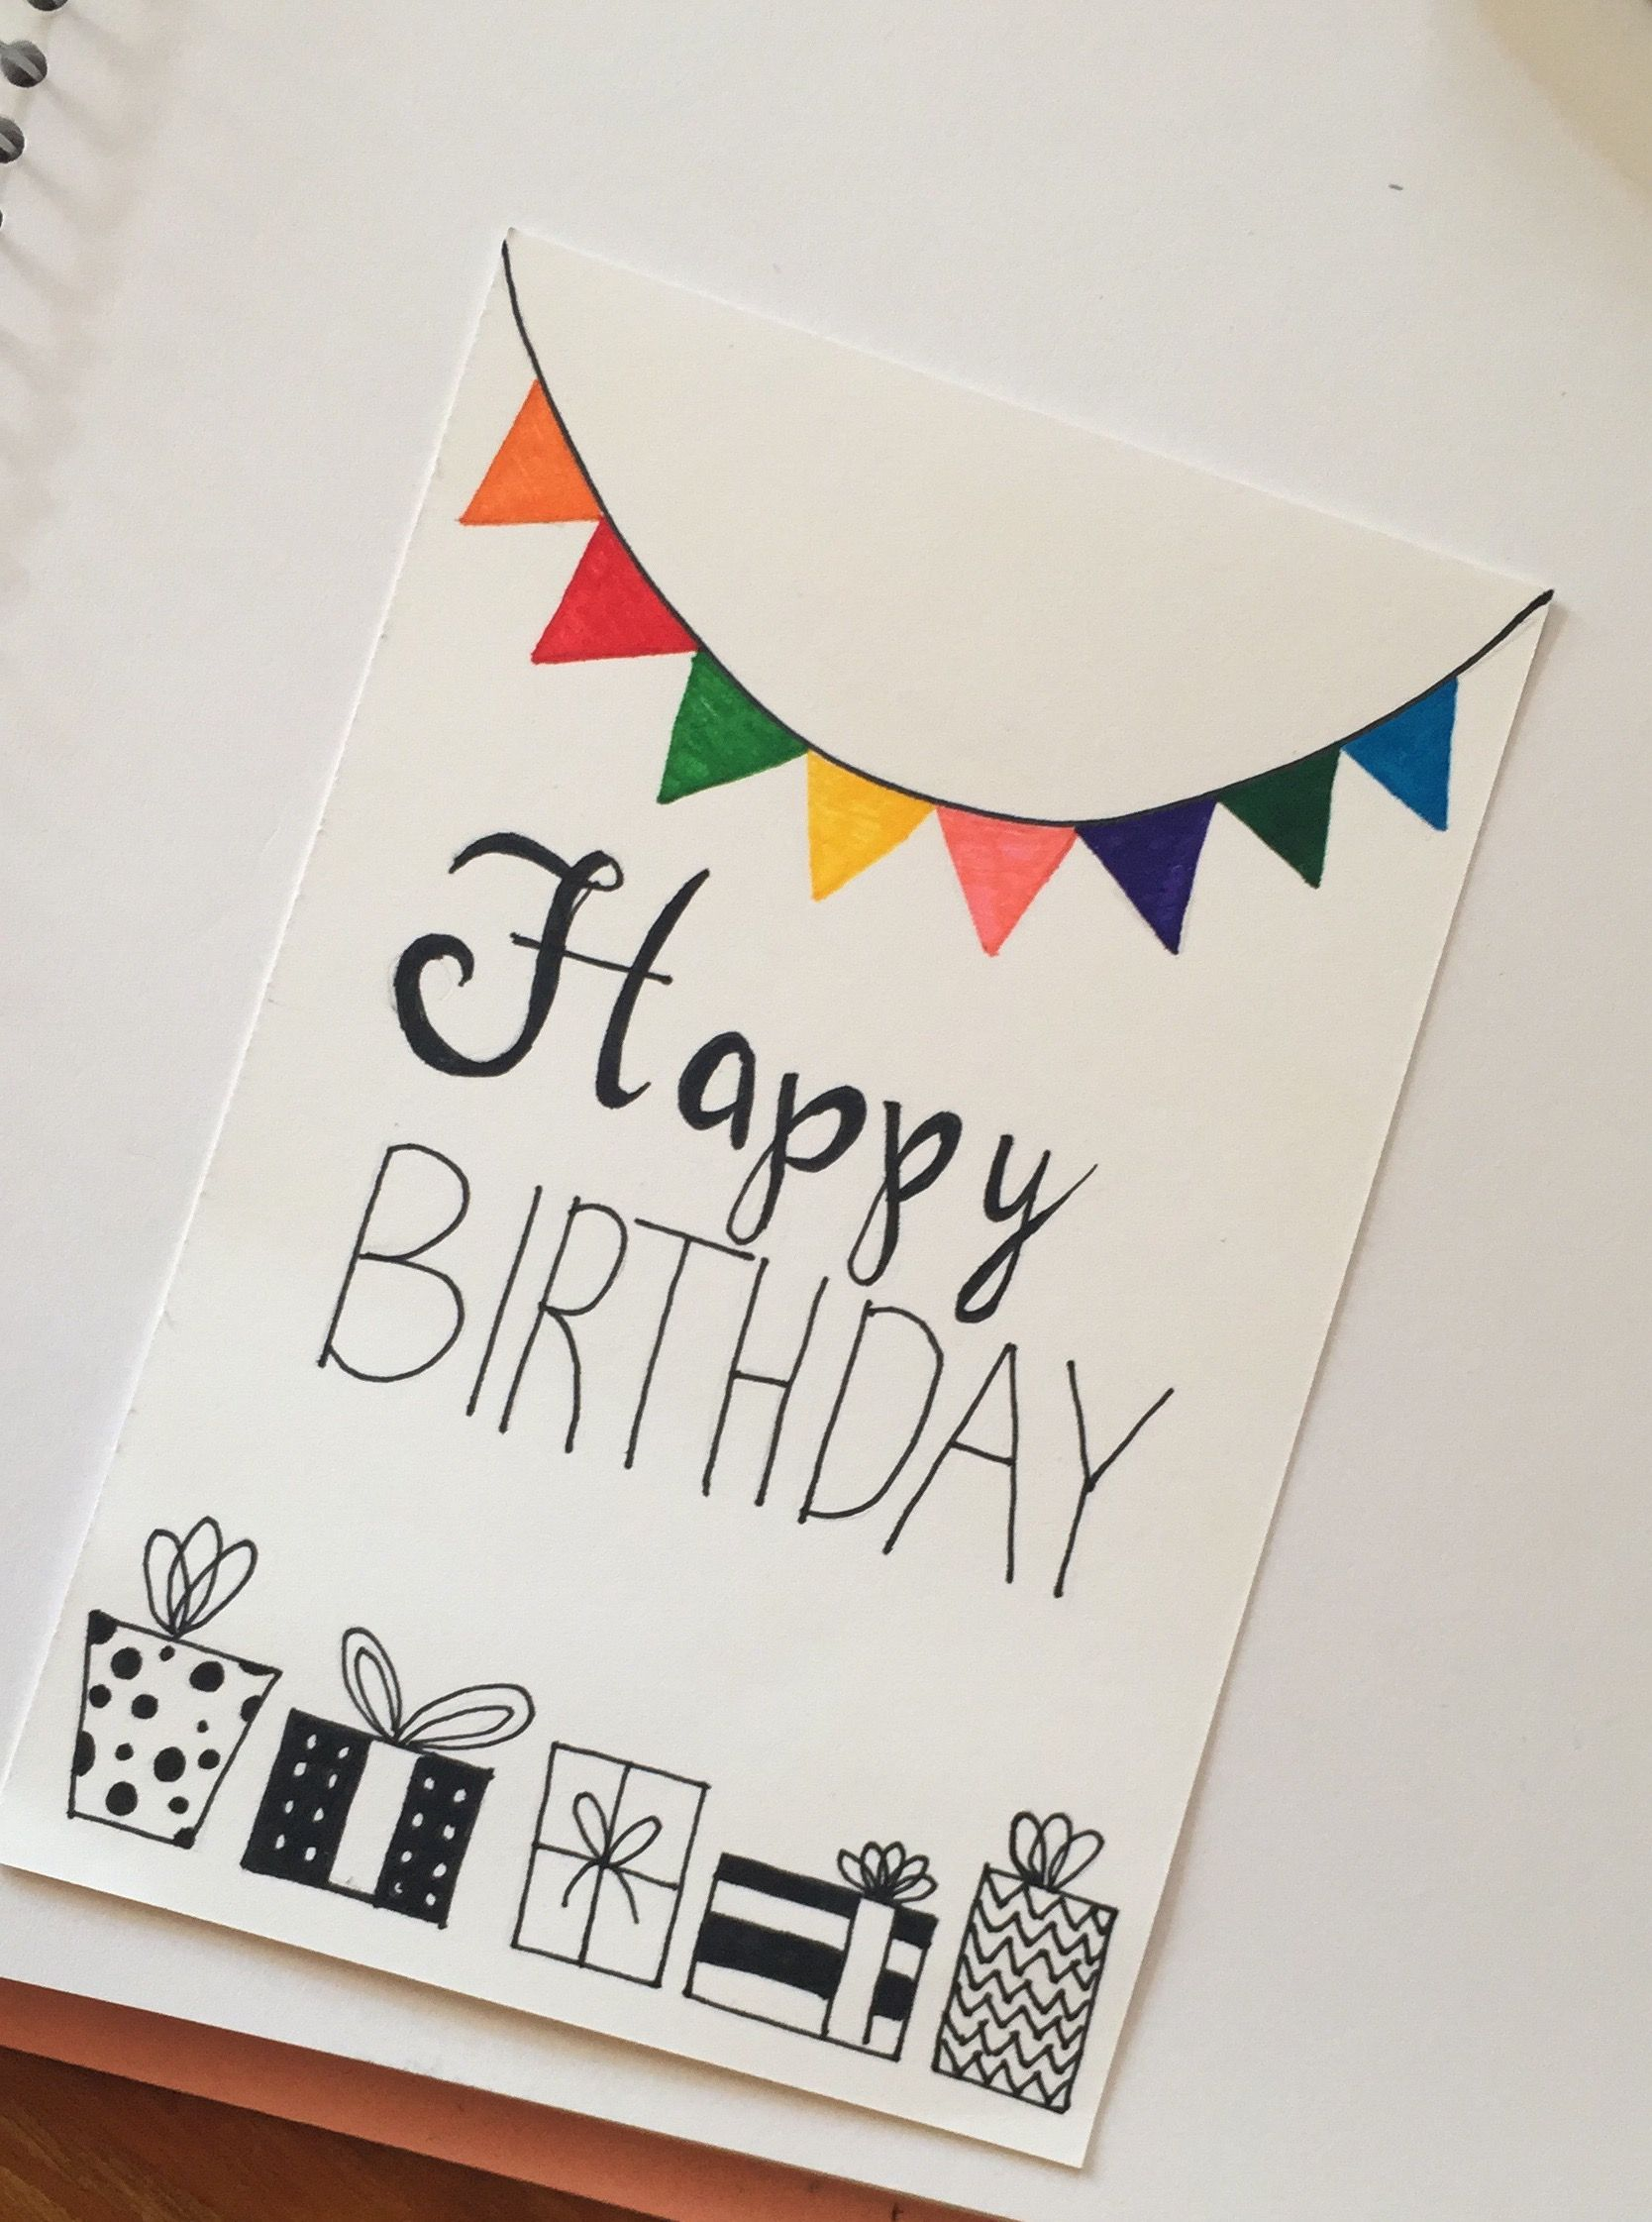 Happy Birthday Cupcake Cute Happy Birthday Card Cupcake Card